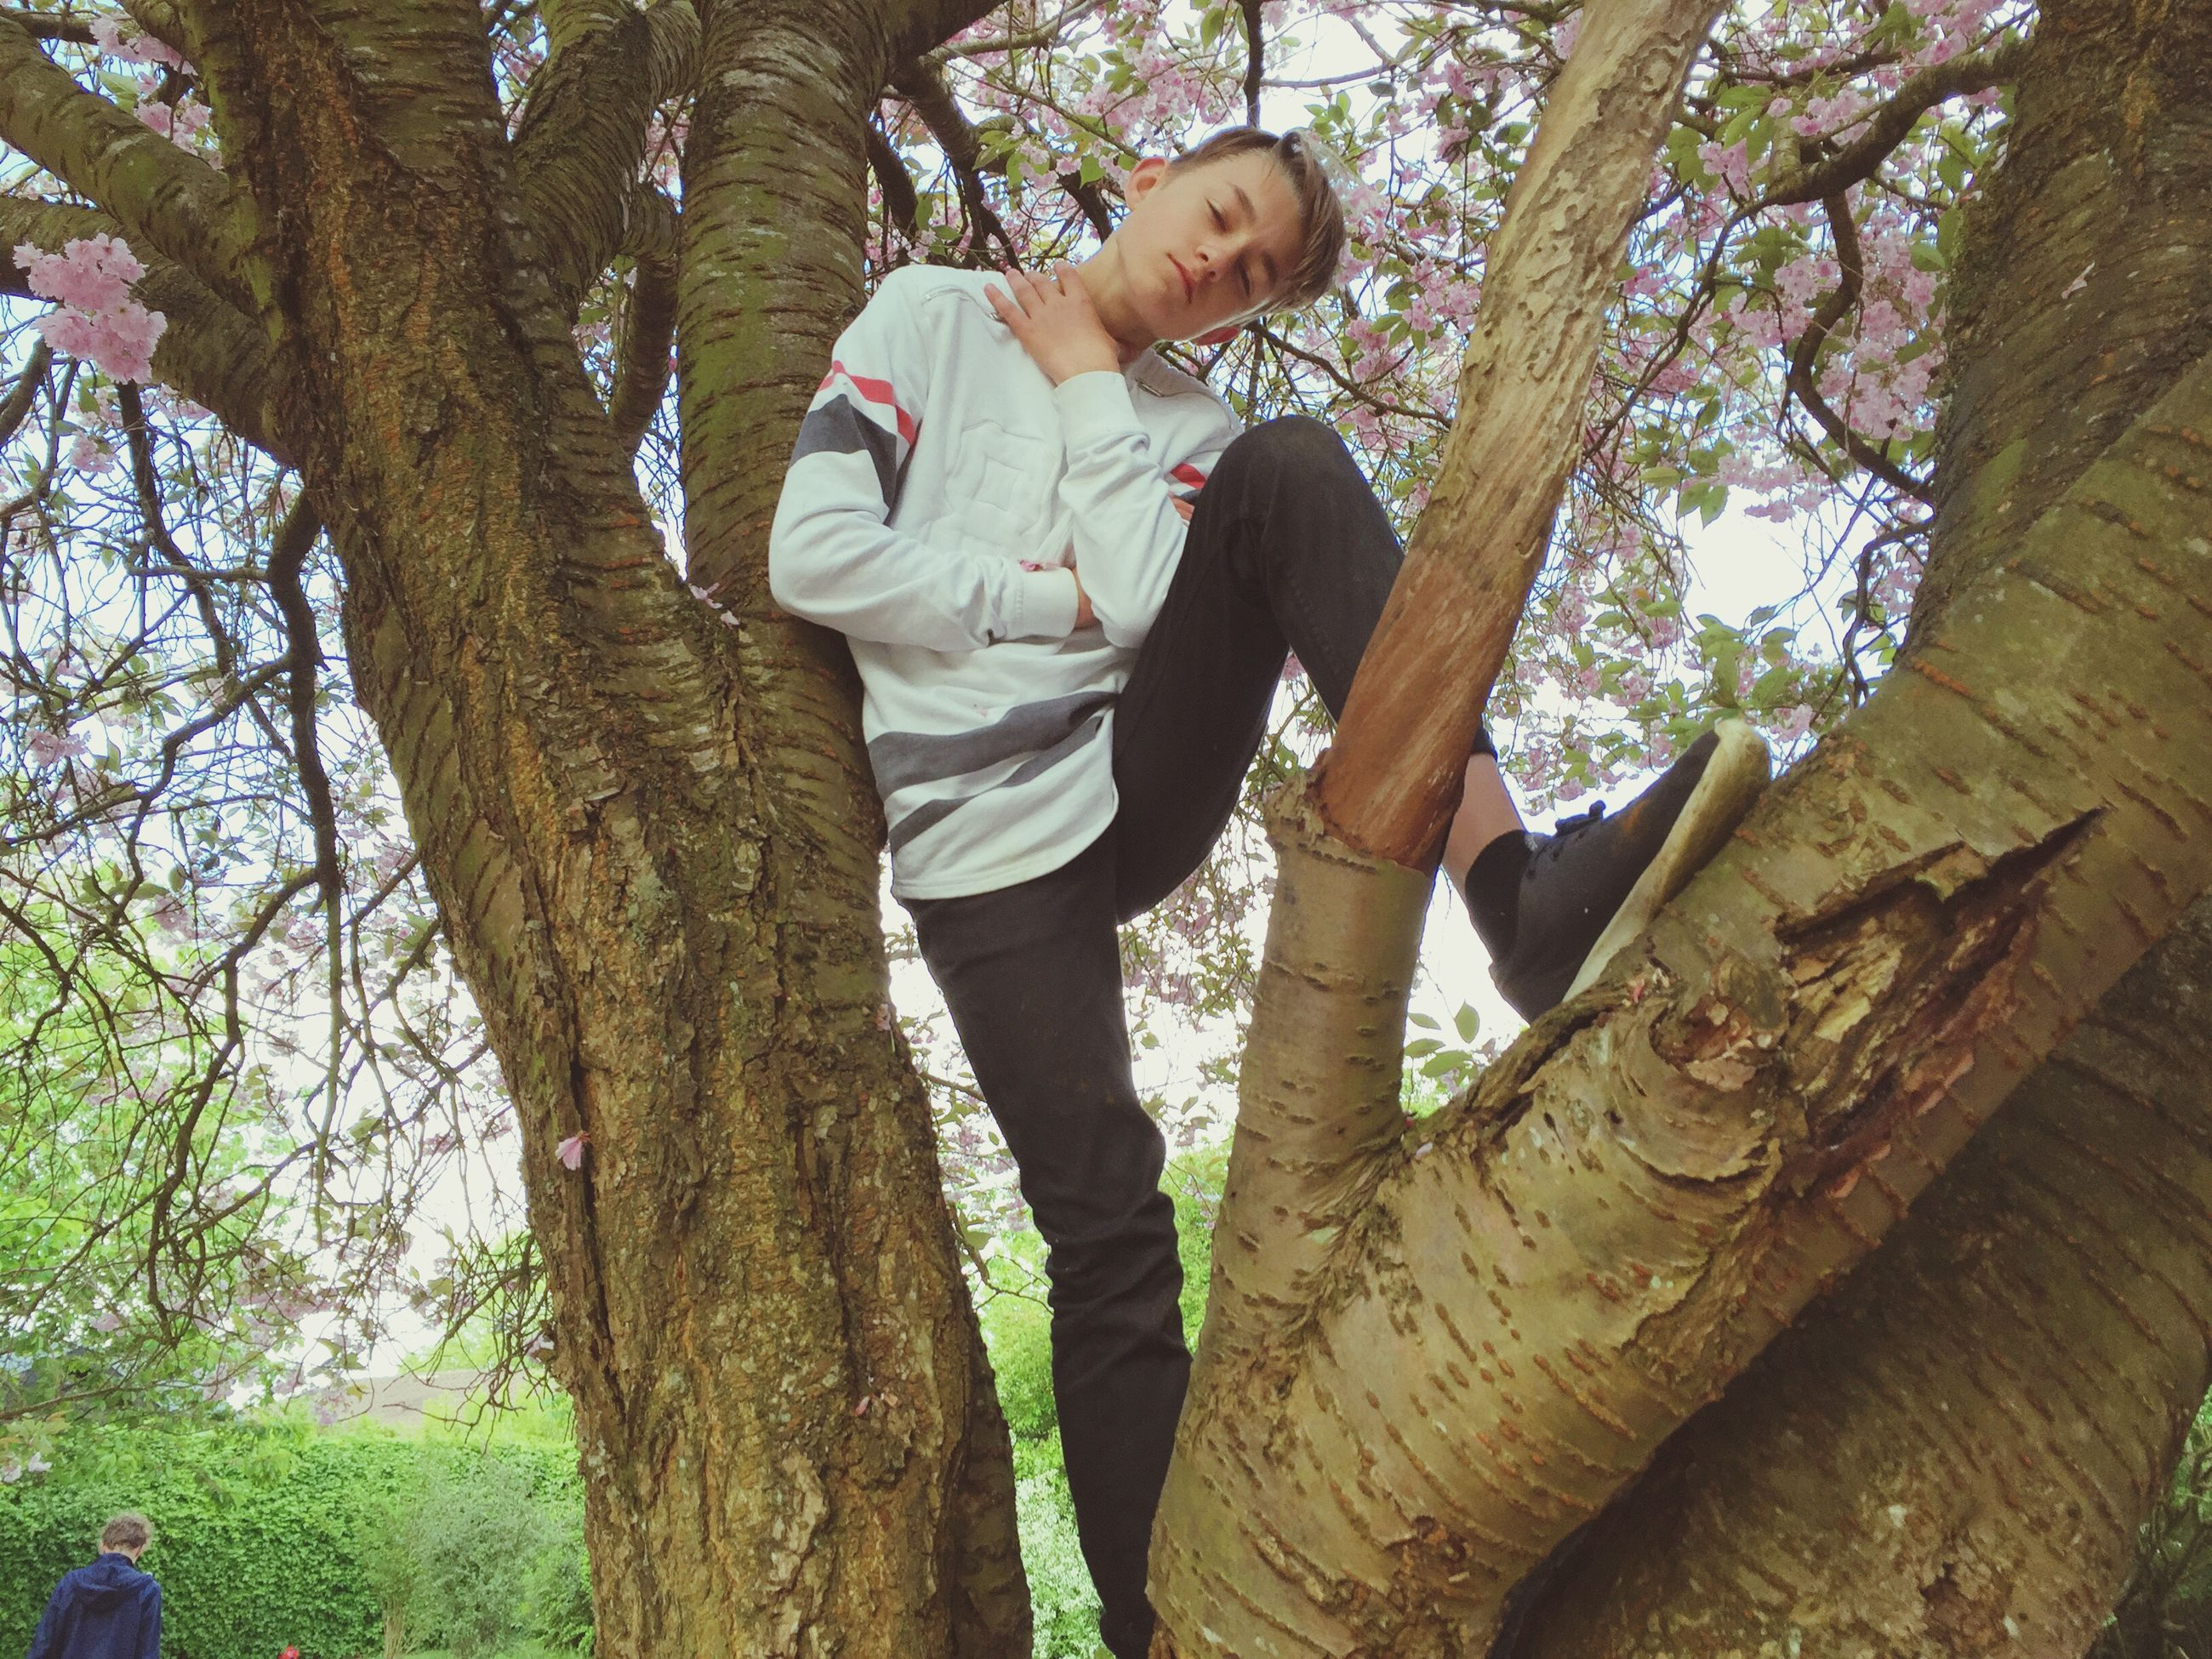 tree, lifestyles, leisure activity, casual clothing, tree trunk, young adult, person, full length, branch, three quarter length, low angle view, childhood, standing, young women, front view, park - man made space, boys, growth